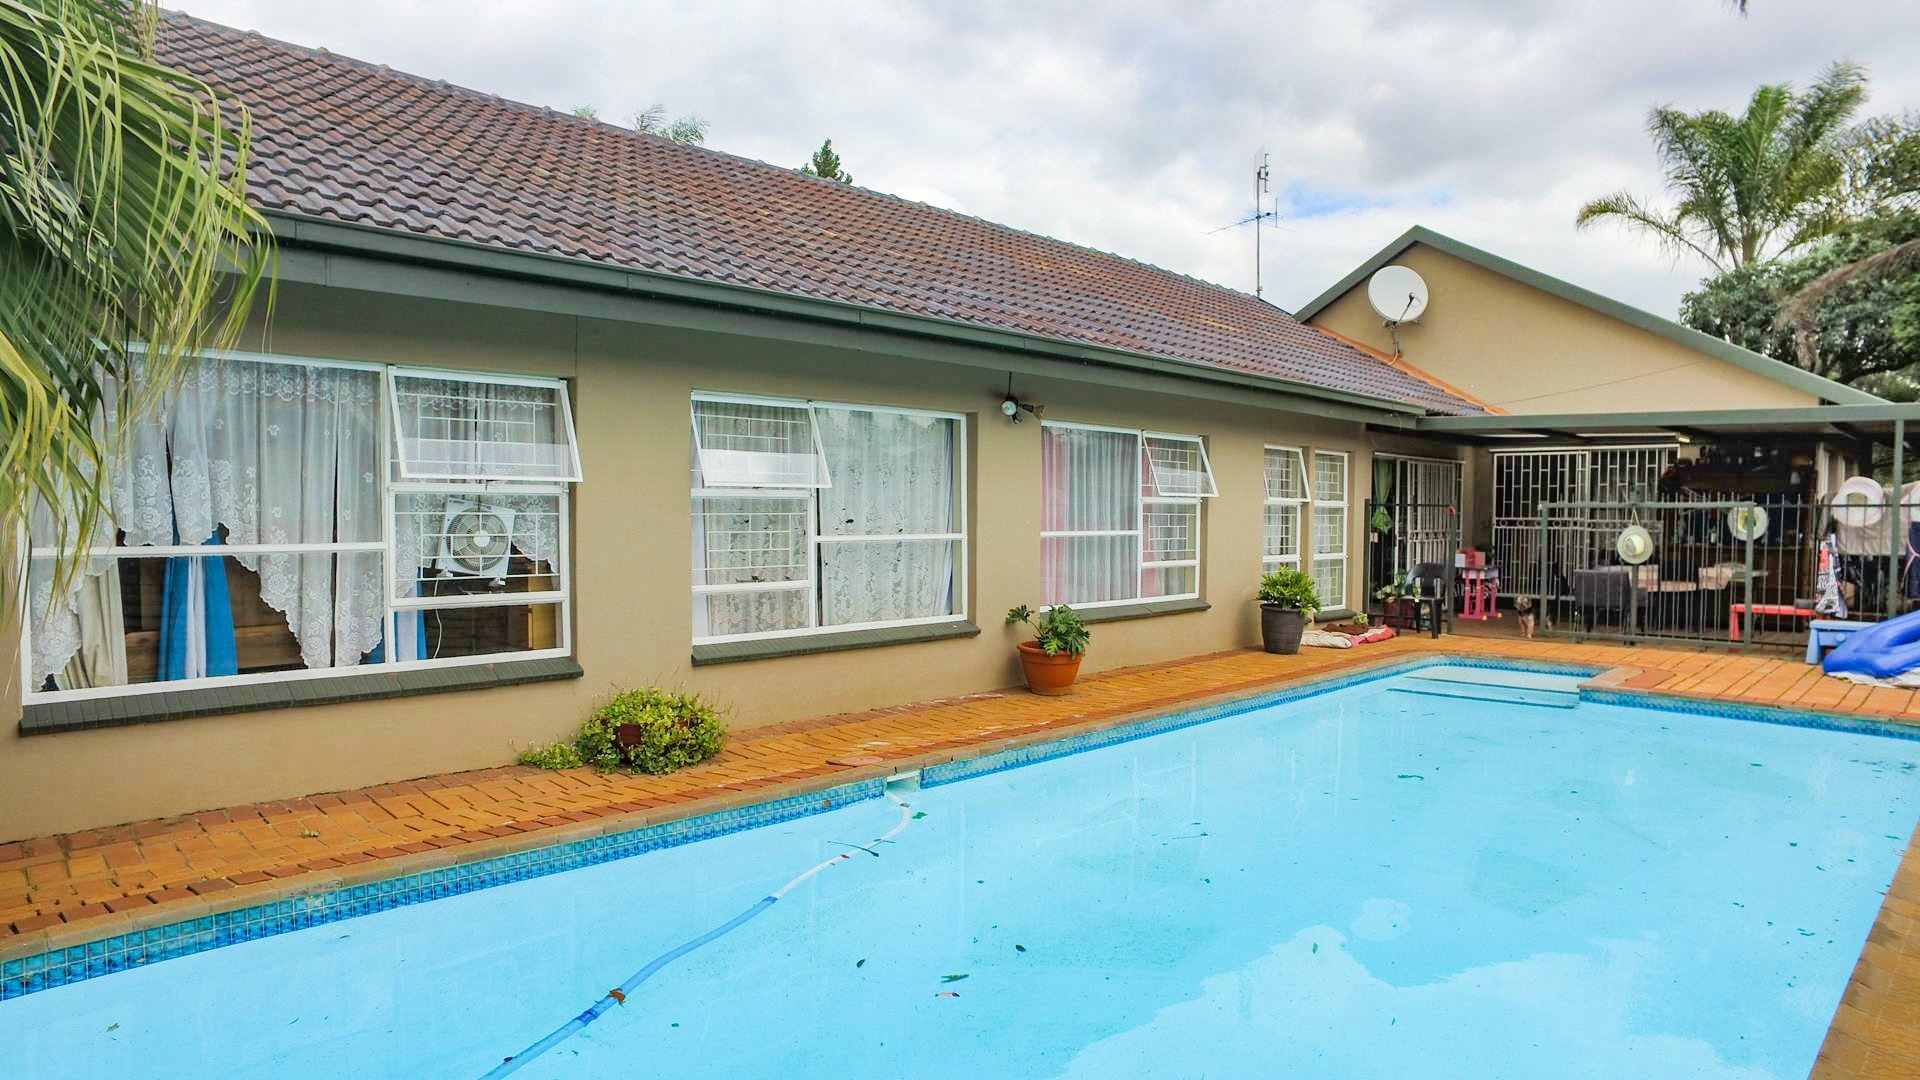 Property and Houses for sale in Doringkloof, House, 4 Bedrooms - ZAR 1,790,000